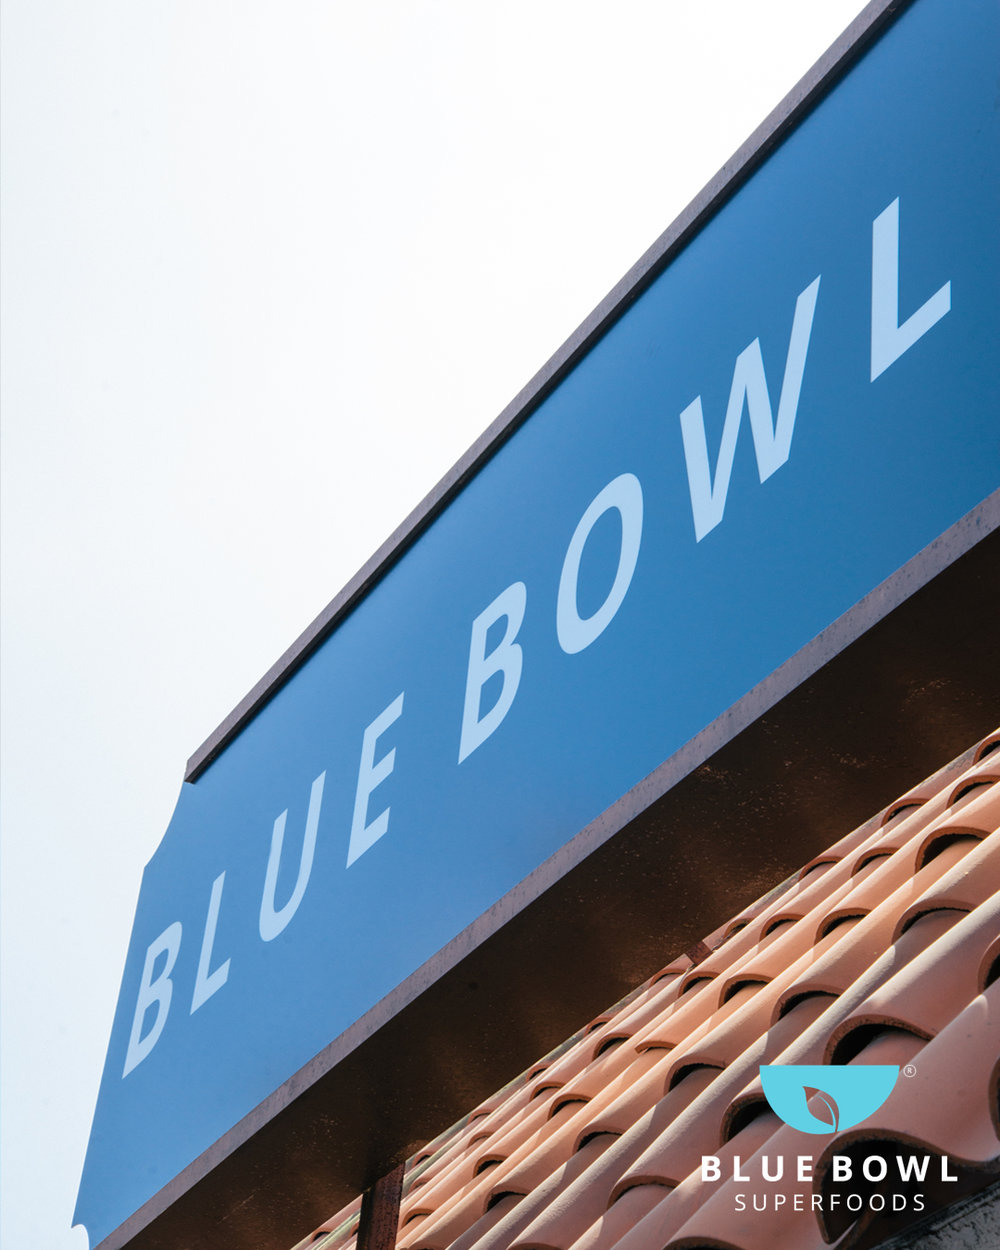 BlueBowl-IG-091318-HBsign.jpg